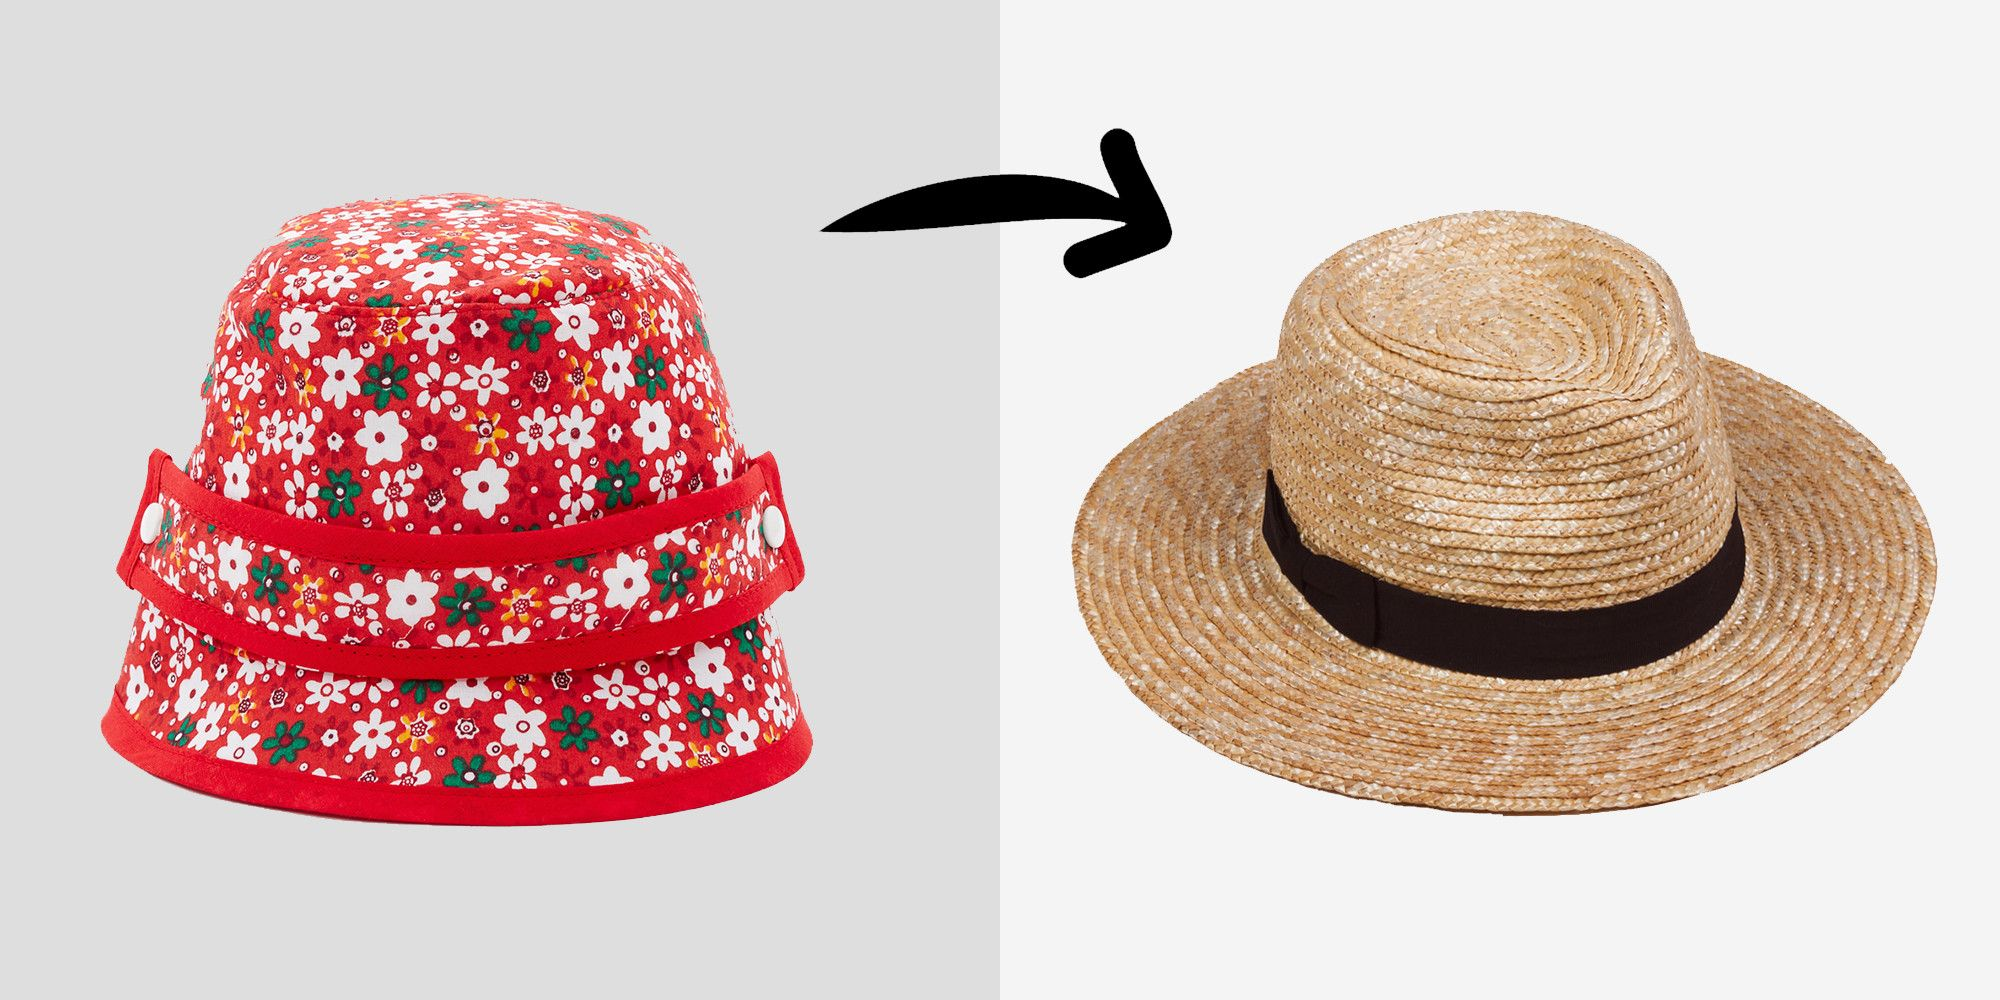 "<p>Why not switch out one cliché for another? (Pretty much no one except Rihanna could do the bucket anyway, if we're being honest with ourselves.) This time, though, the fedora is straying far from its sad Rat Pack wannabe rep and straight into weirdly, actually cool territory, thanks to Karl Lagerfeld and <a href=""http://www.marieclaire.com/fashion/news/a20326/chanel-cruise-cuba/"">one momentous night in Cuba</a>. </p><p><br> </p><p><em>Bernstock Spiers bucket hat, $160, <a href=""https://www.openingceremony.com/products.asp?menuid=2&catid=14&subcatid=53&designerid=558&productid=164298"">openingceremony.com</a>; Lack of Color straw fedora, $59, <a href=""https://www.lackofcolor.com.au/product/the-spencer-fedora/"">lackofcolor.com.au</a>.</em></p>"